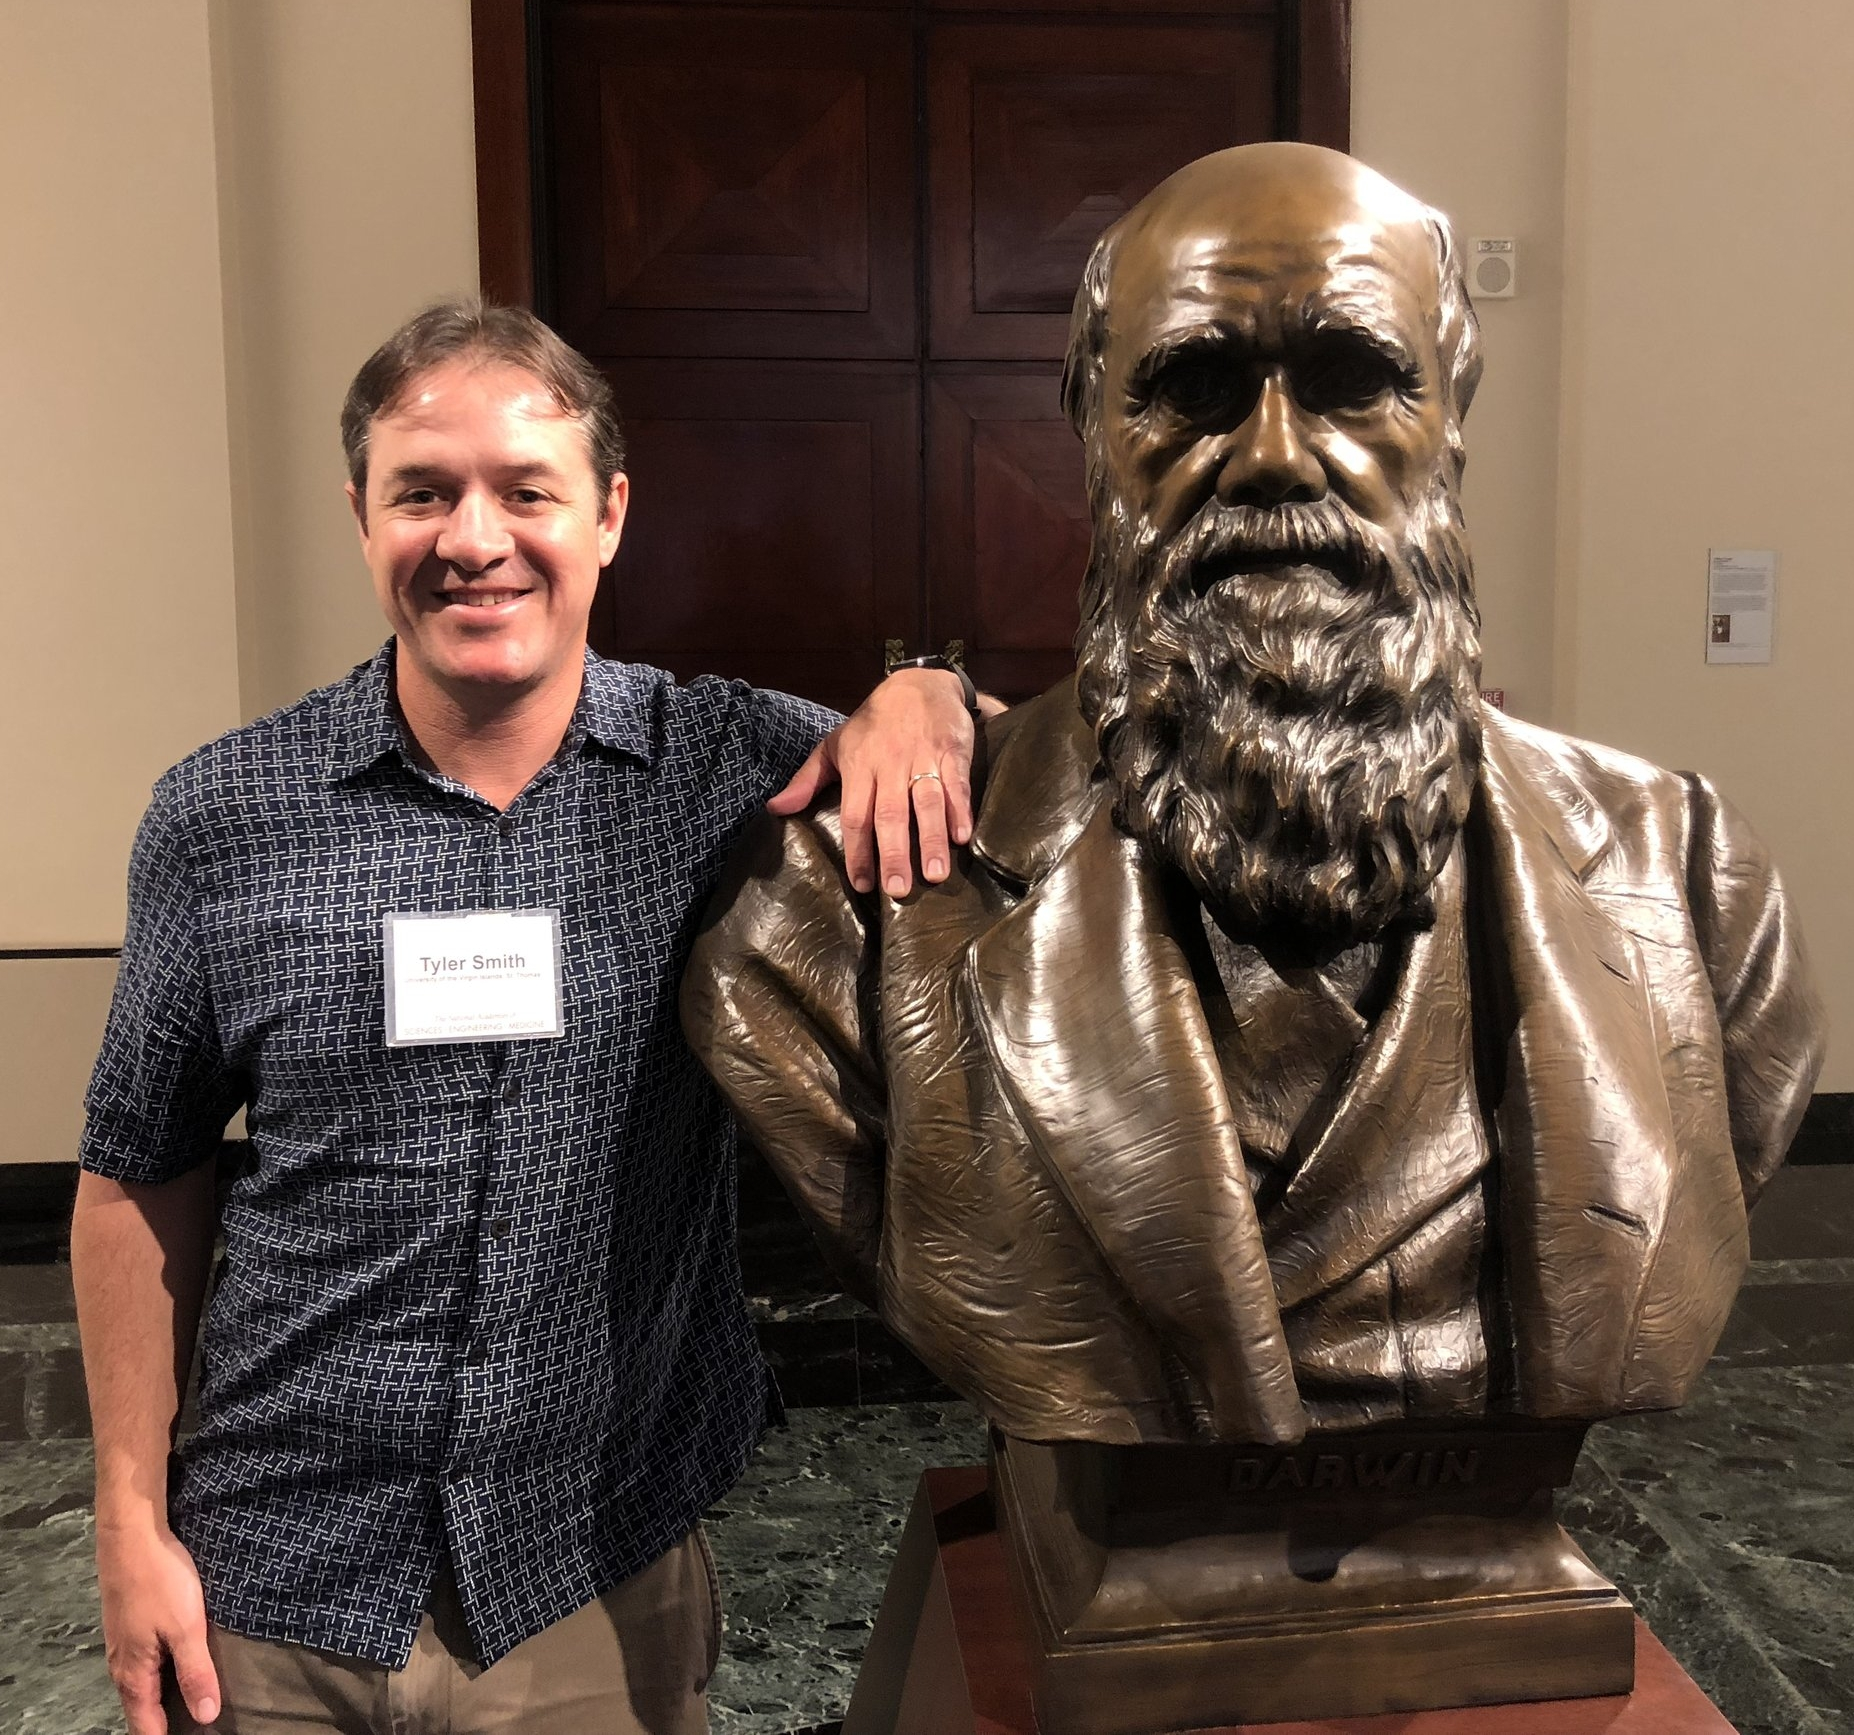 Dr. Smith with a bust of Charles Darwin inside the National Academy of Sciences headquarters. The IIRCR's inaugural meeting took place on February 8, 2018.